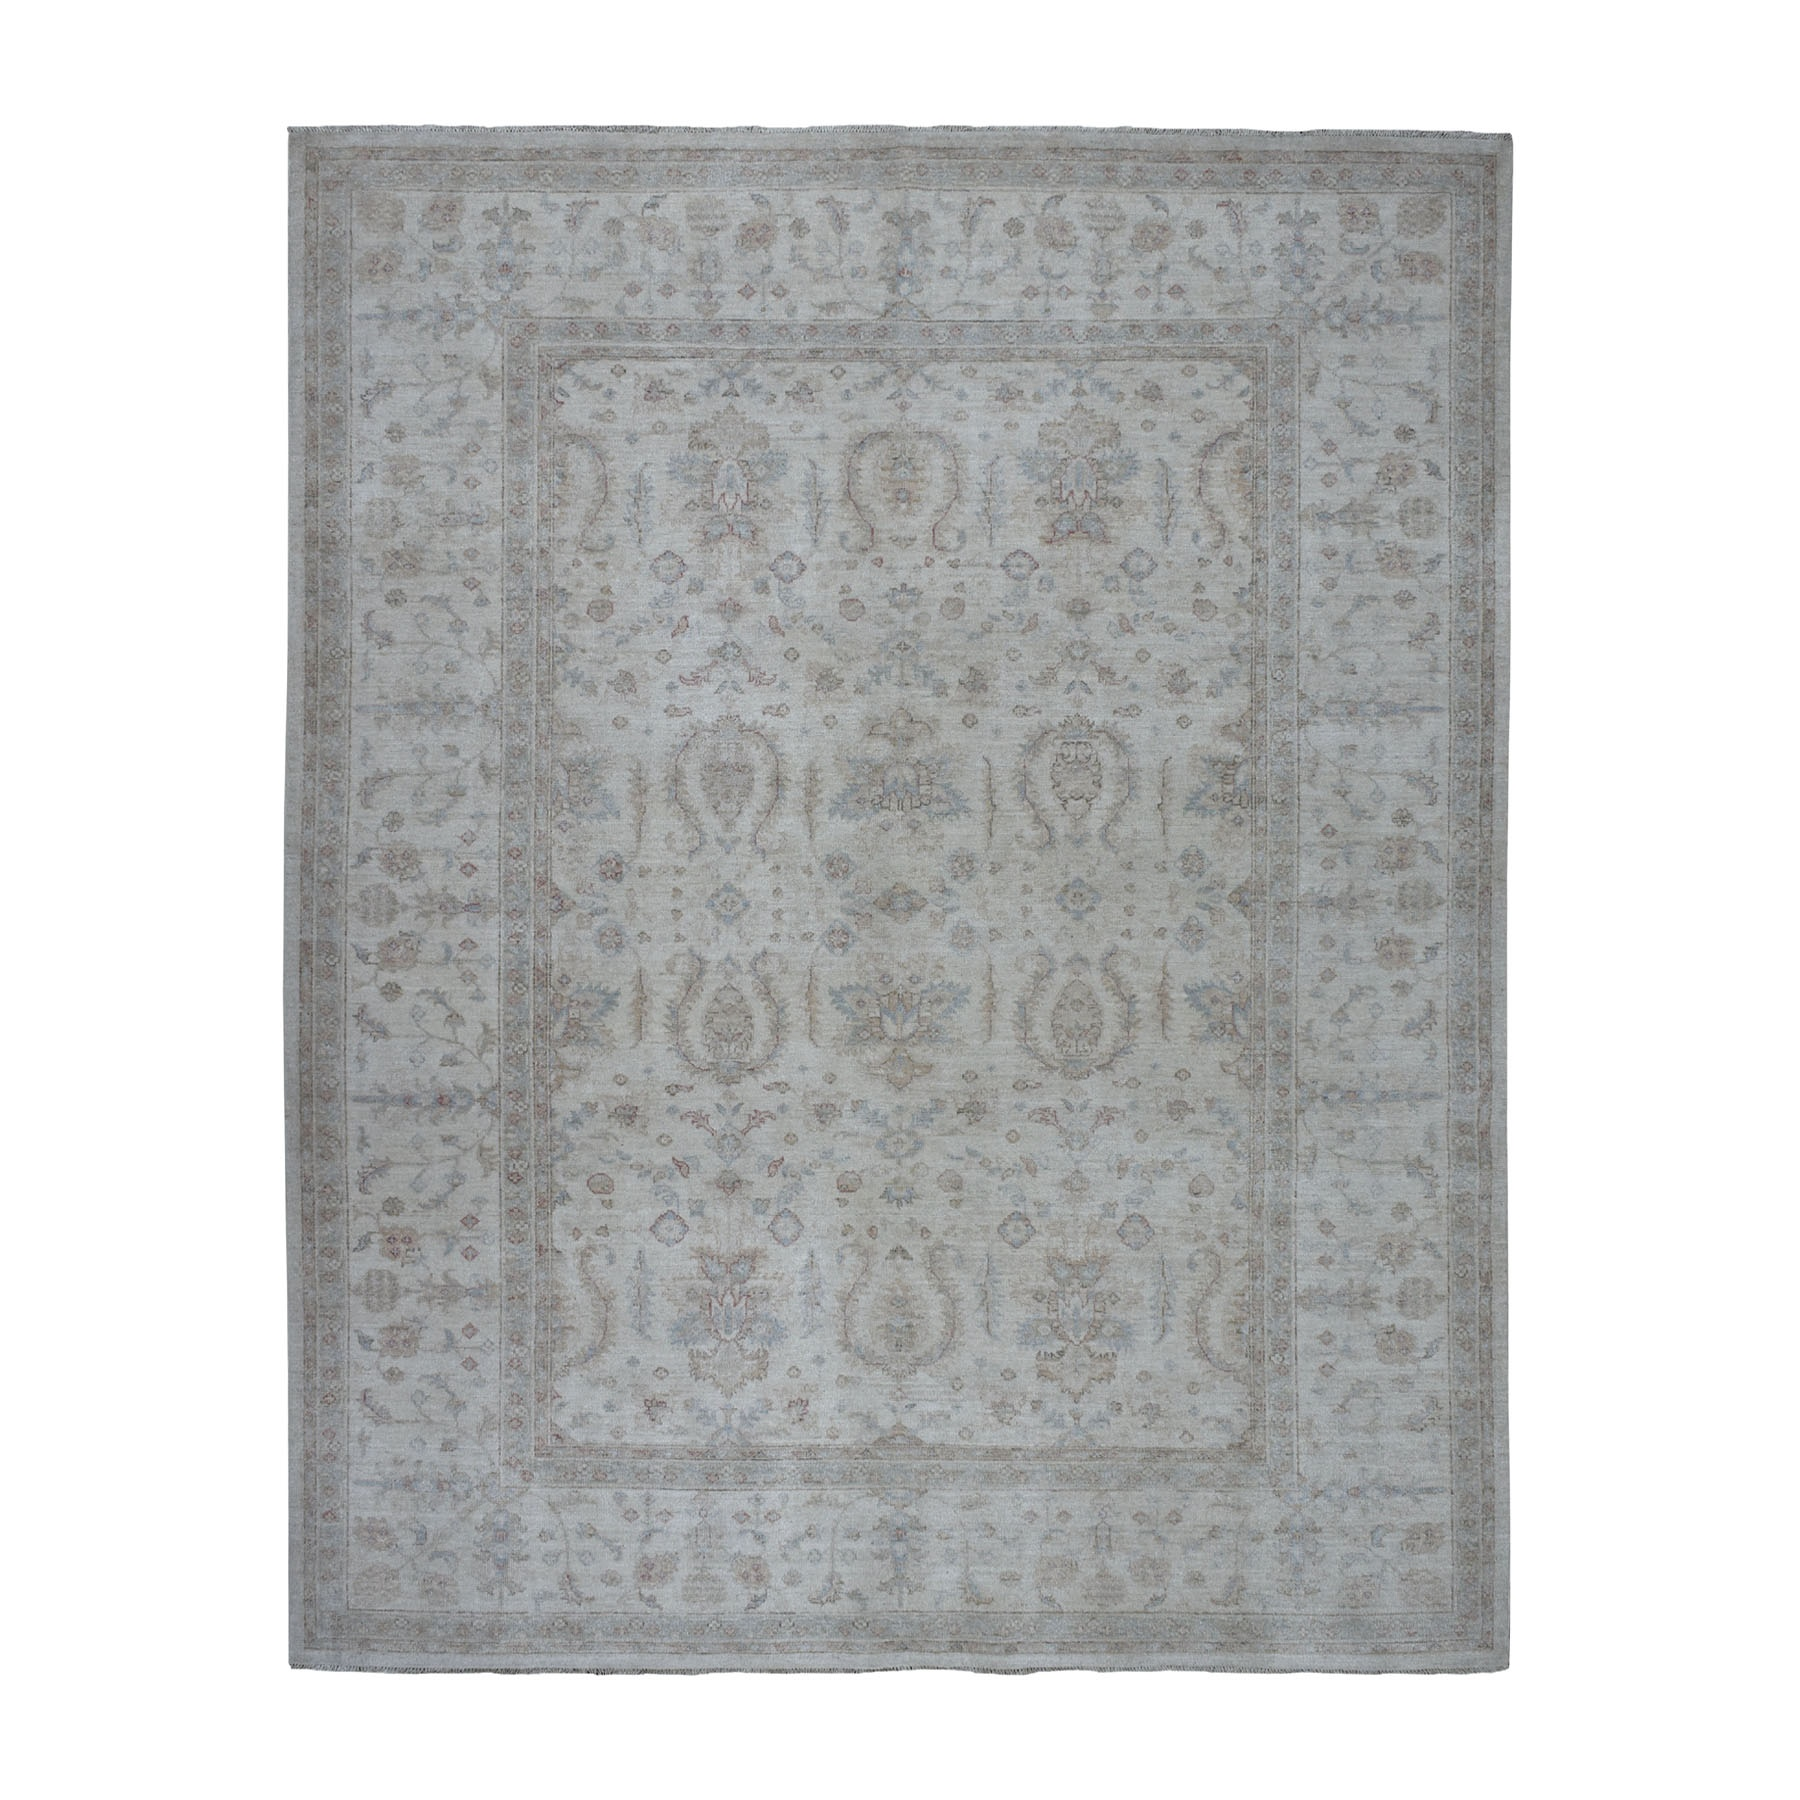 "8'1""x10' White Wash Peshawar Pure Wool Hand Knotted Oriental Rug"